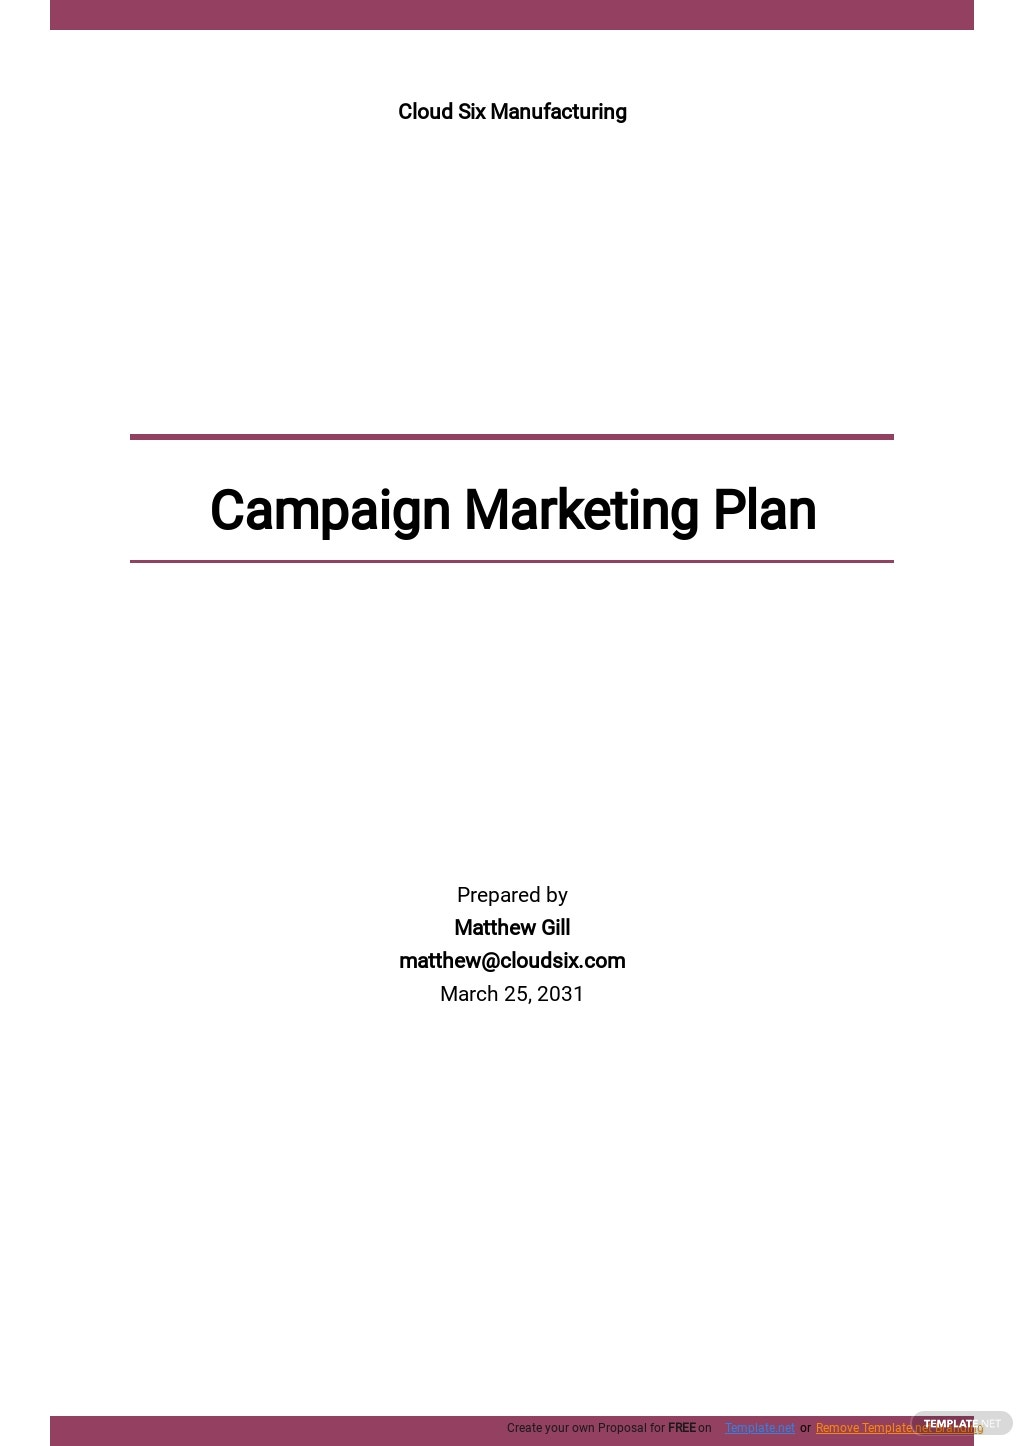 Campaign Marketing Plan Template